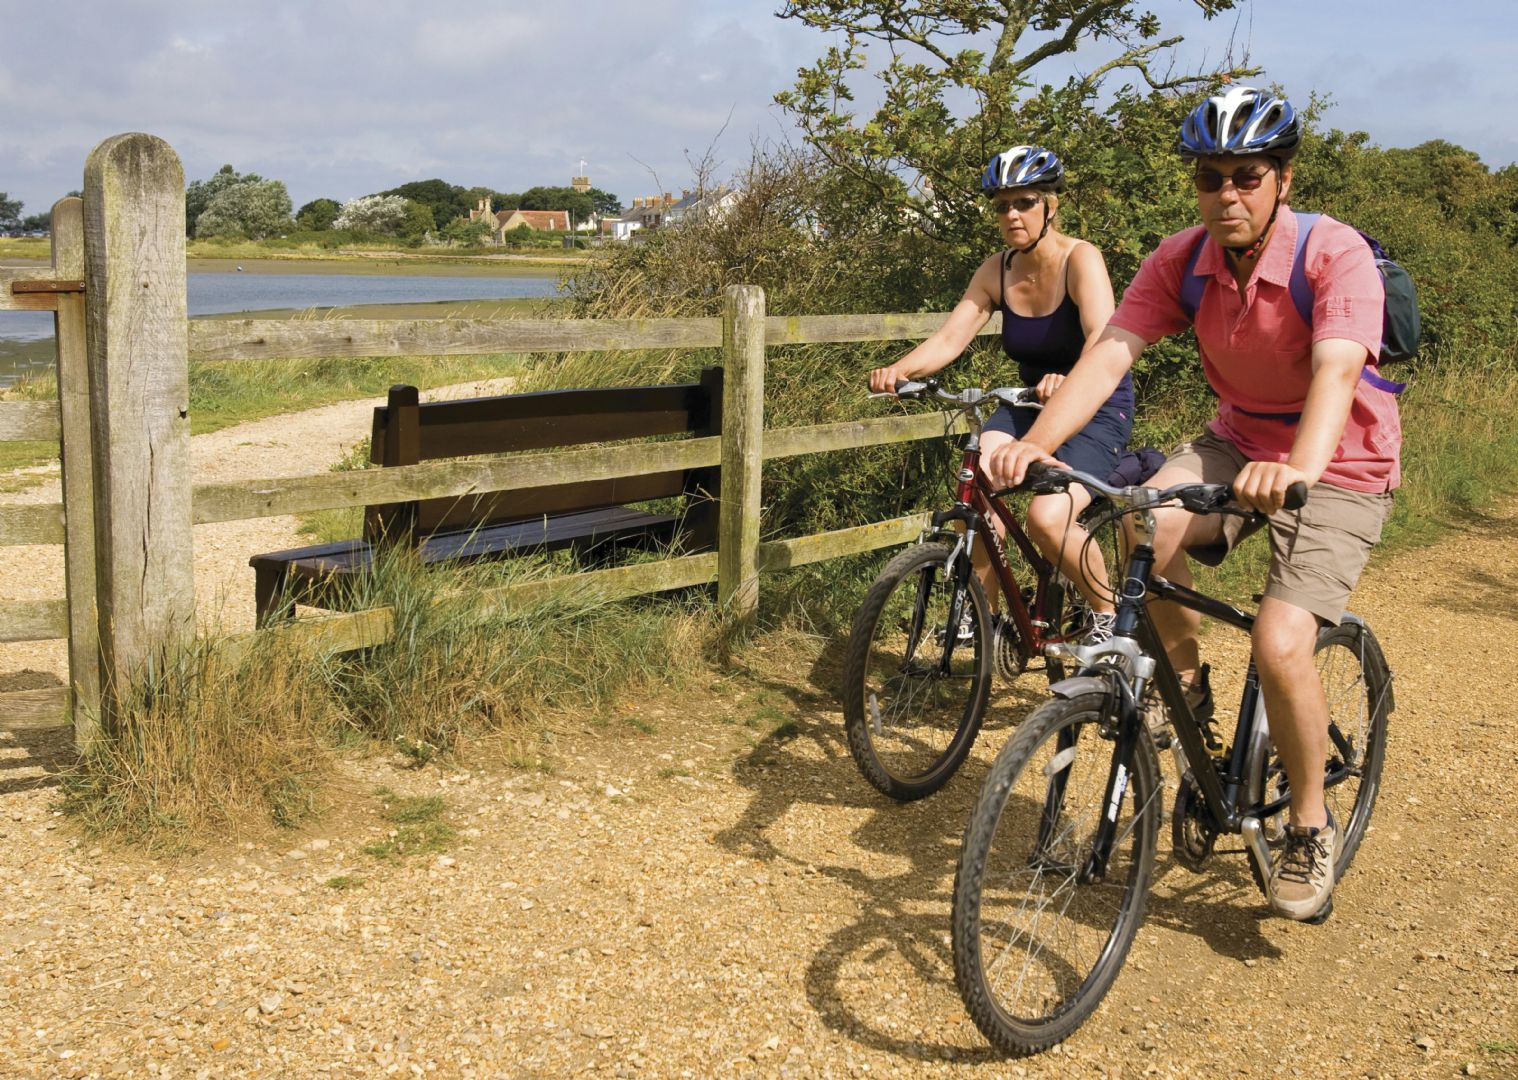 lesiure-cycling-holiday-uk-isleofwight-cyclists.jpg - UK - Isle of Wight - Freshwater Bay - Self-Guided Leisure Cycling Holiday - Leisure Cycling